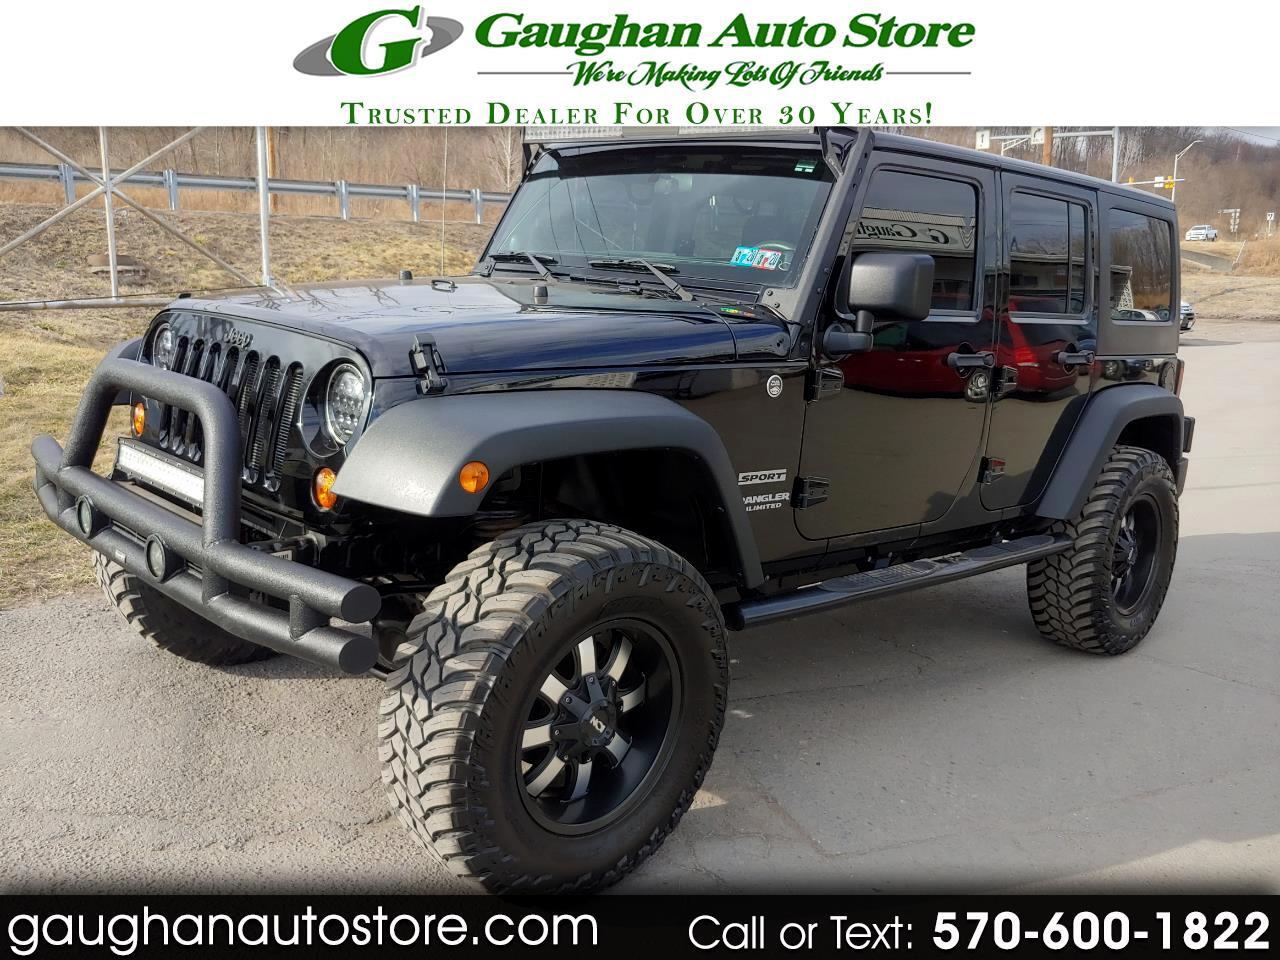 2011 Jeep Wrangler Unlimited 4WD 4 DR SPORT NEW TIRES AND WHEELS  LIFT KIT